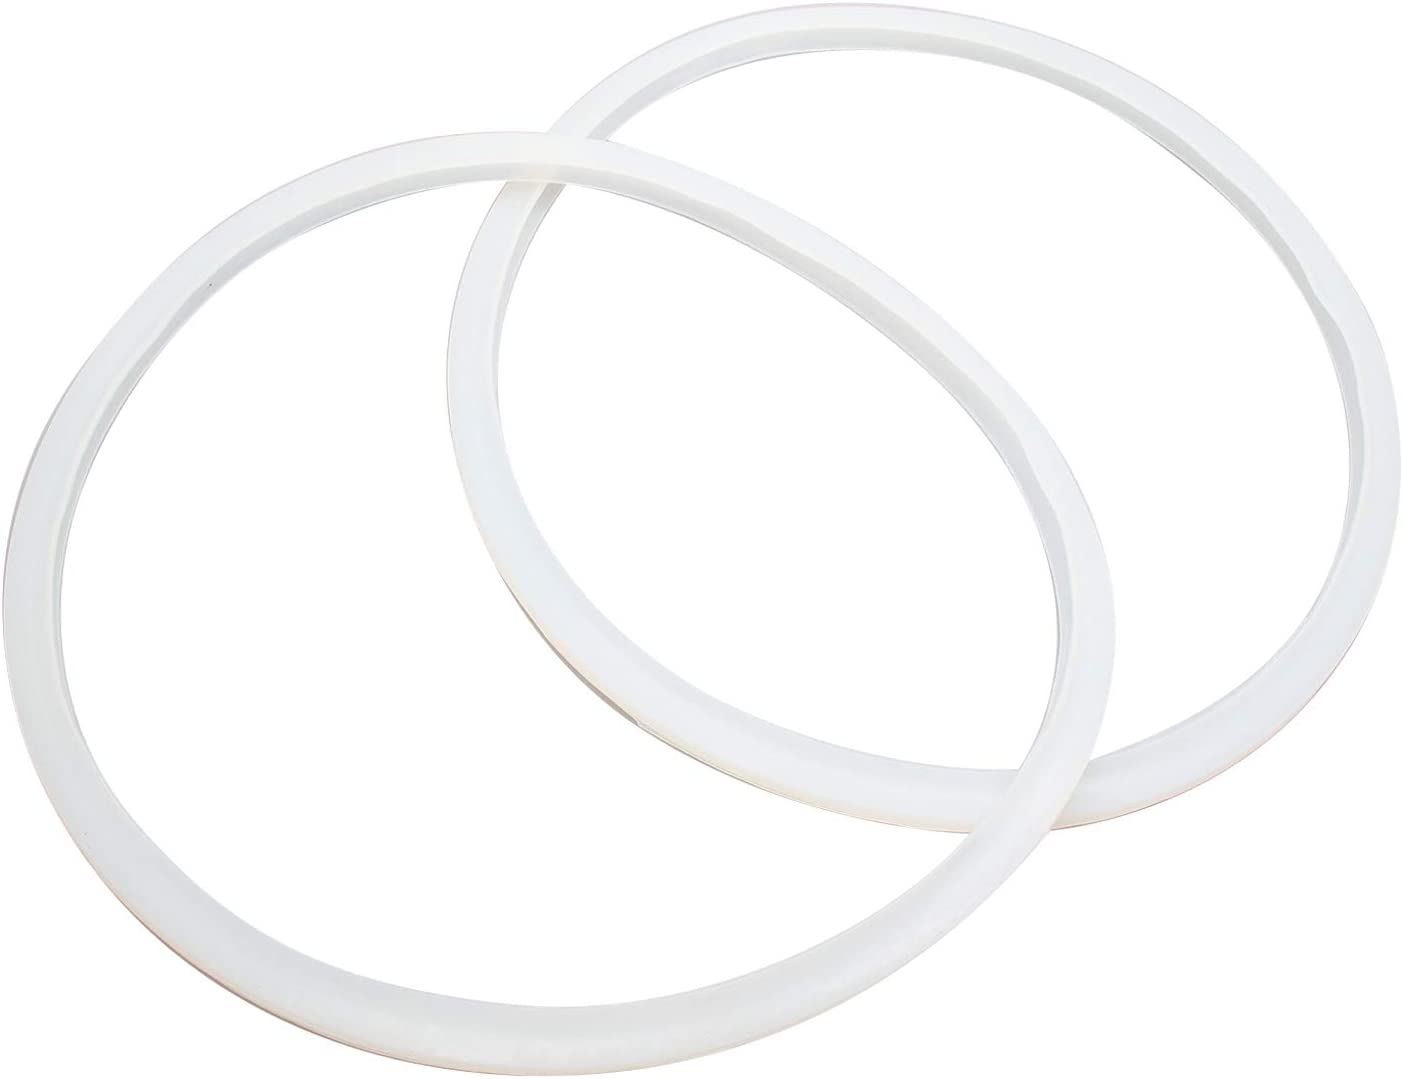 Semetall 2 Pack 10 Inch(Inner Diameter: 260 mm) Universal Pressure Cooker Sealing Ring,Pressure Cooker Replacement Gasket (Transparent)